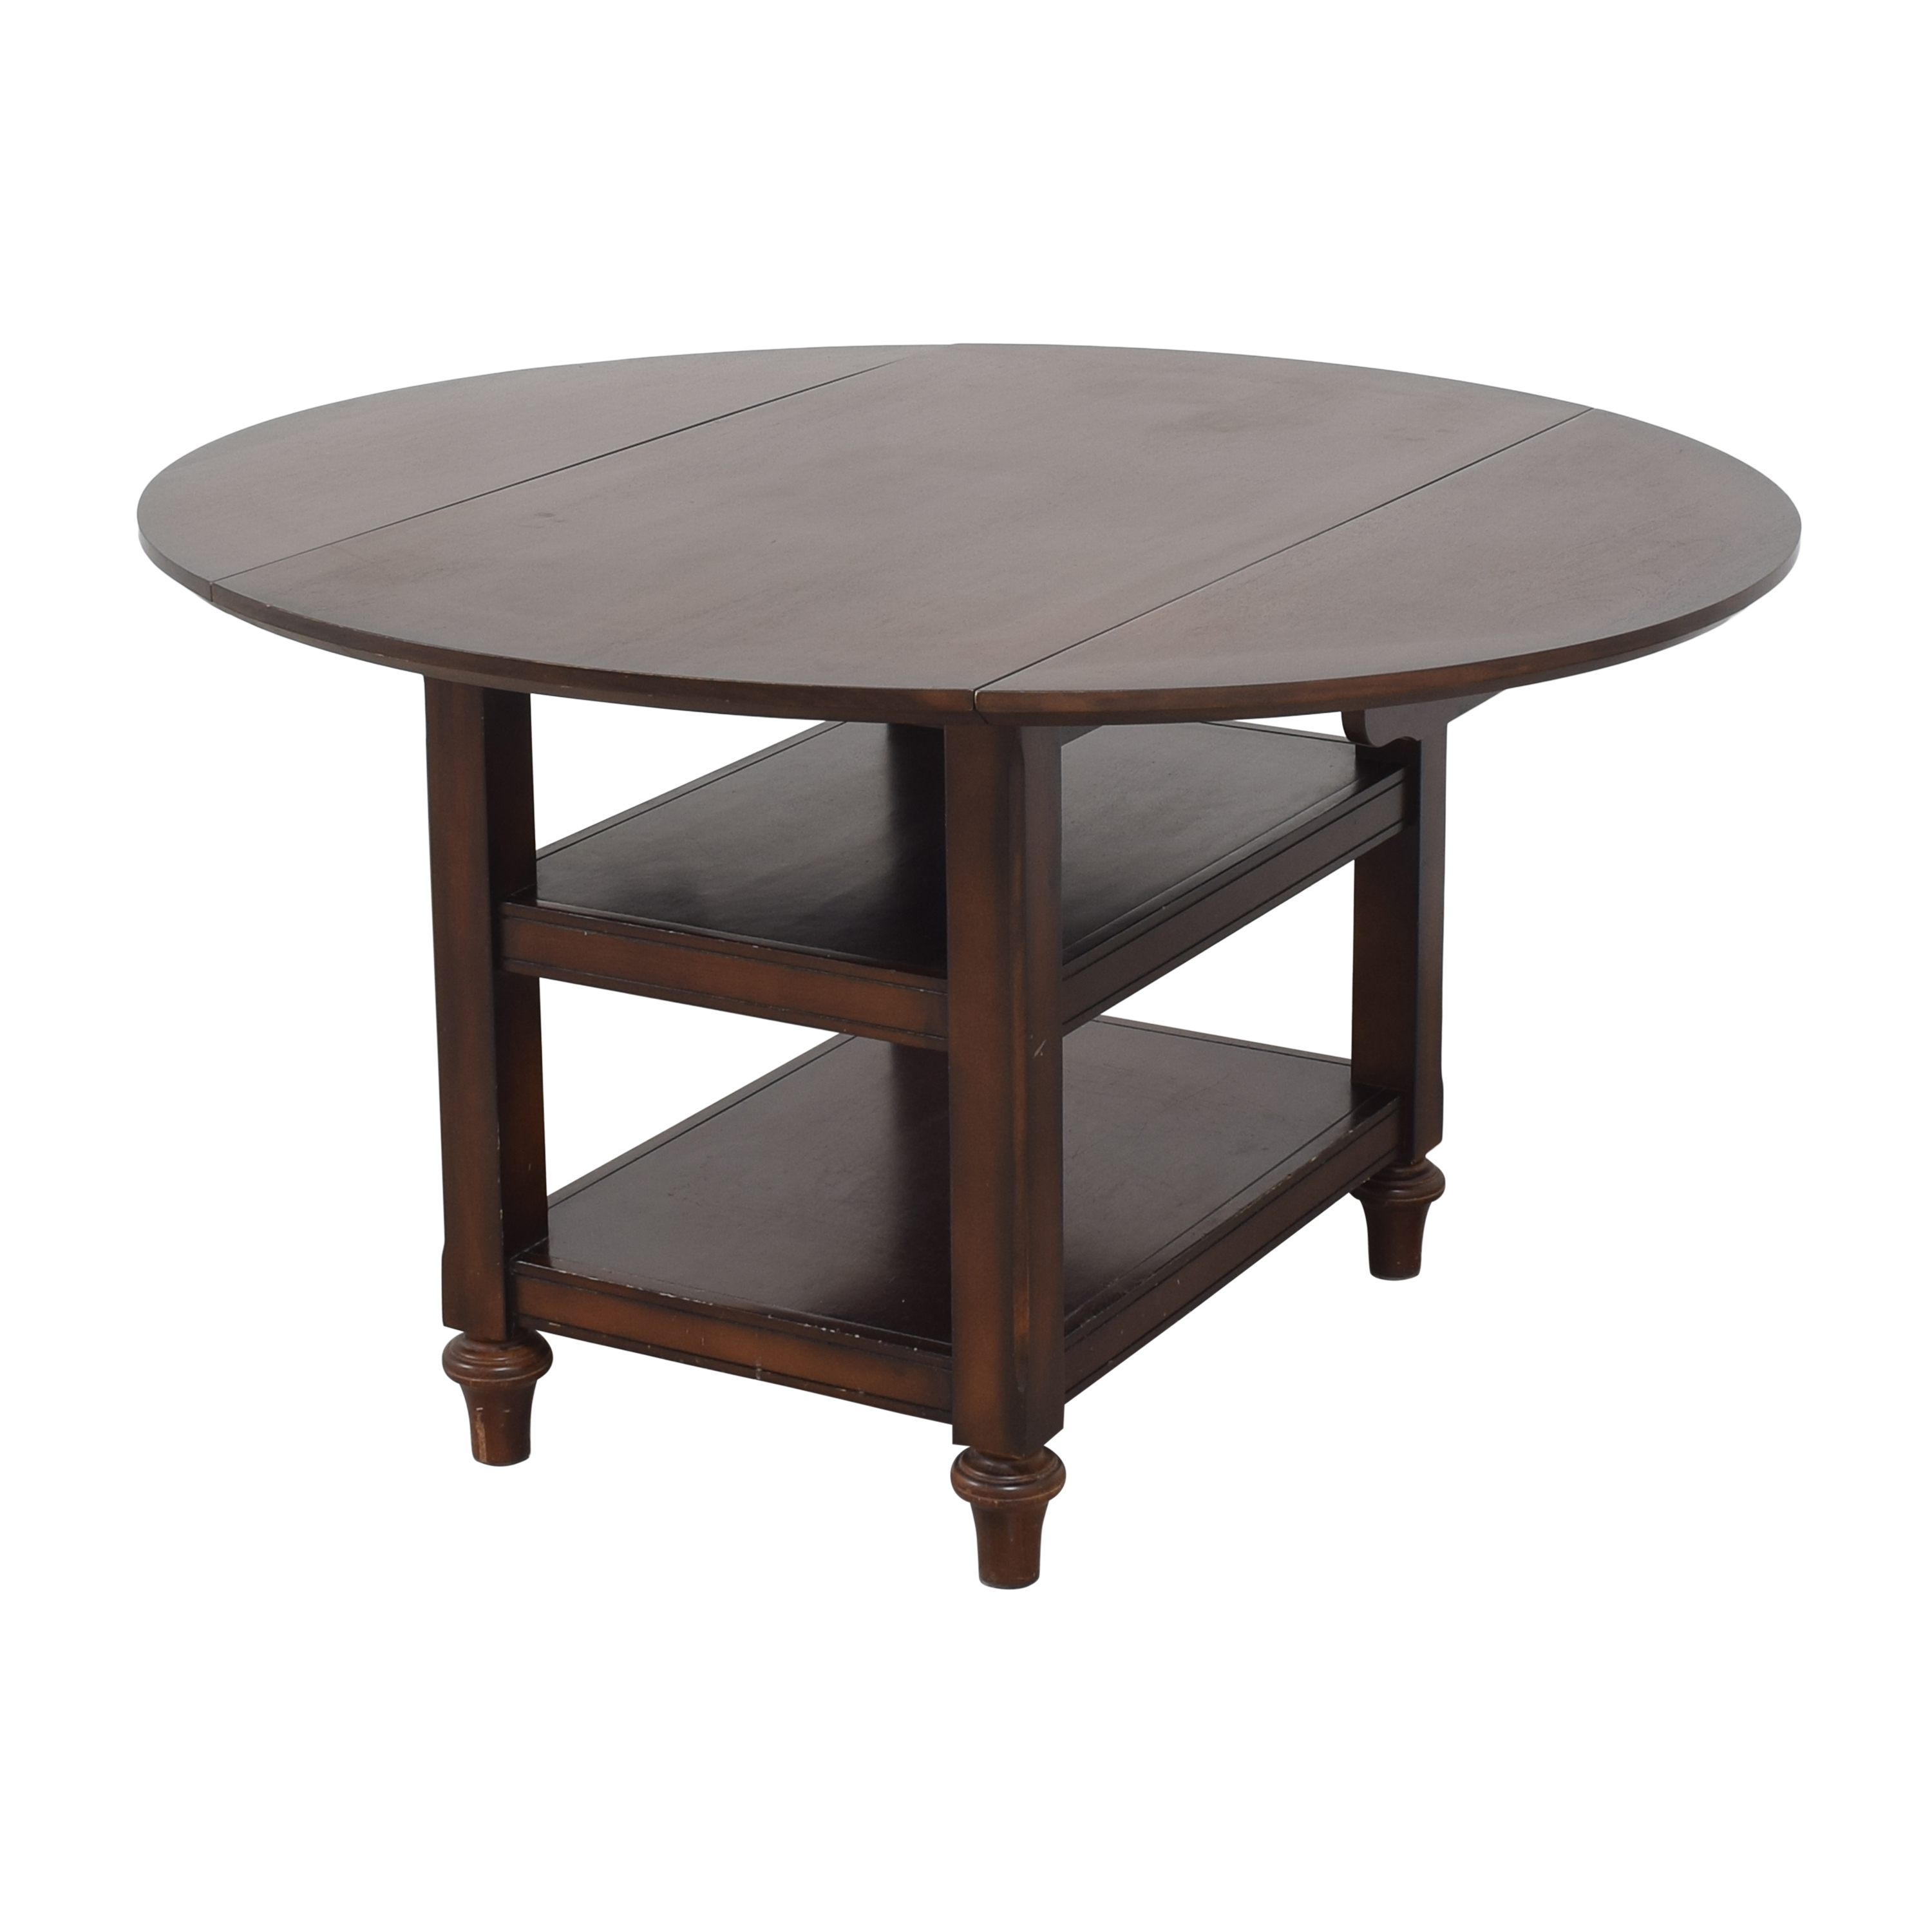 buy Pottery Barn Pottery Barn Shayne Round Drop Leaf Dining Table online